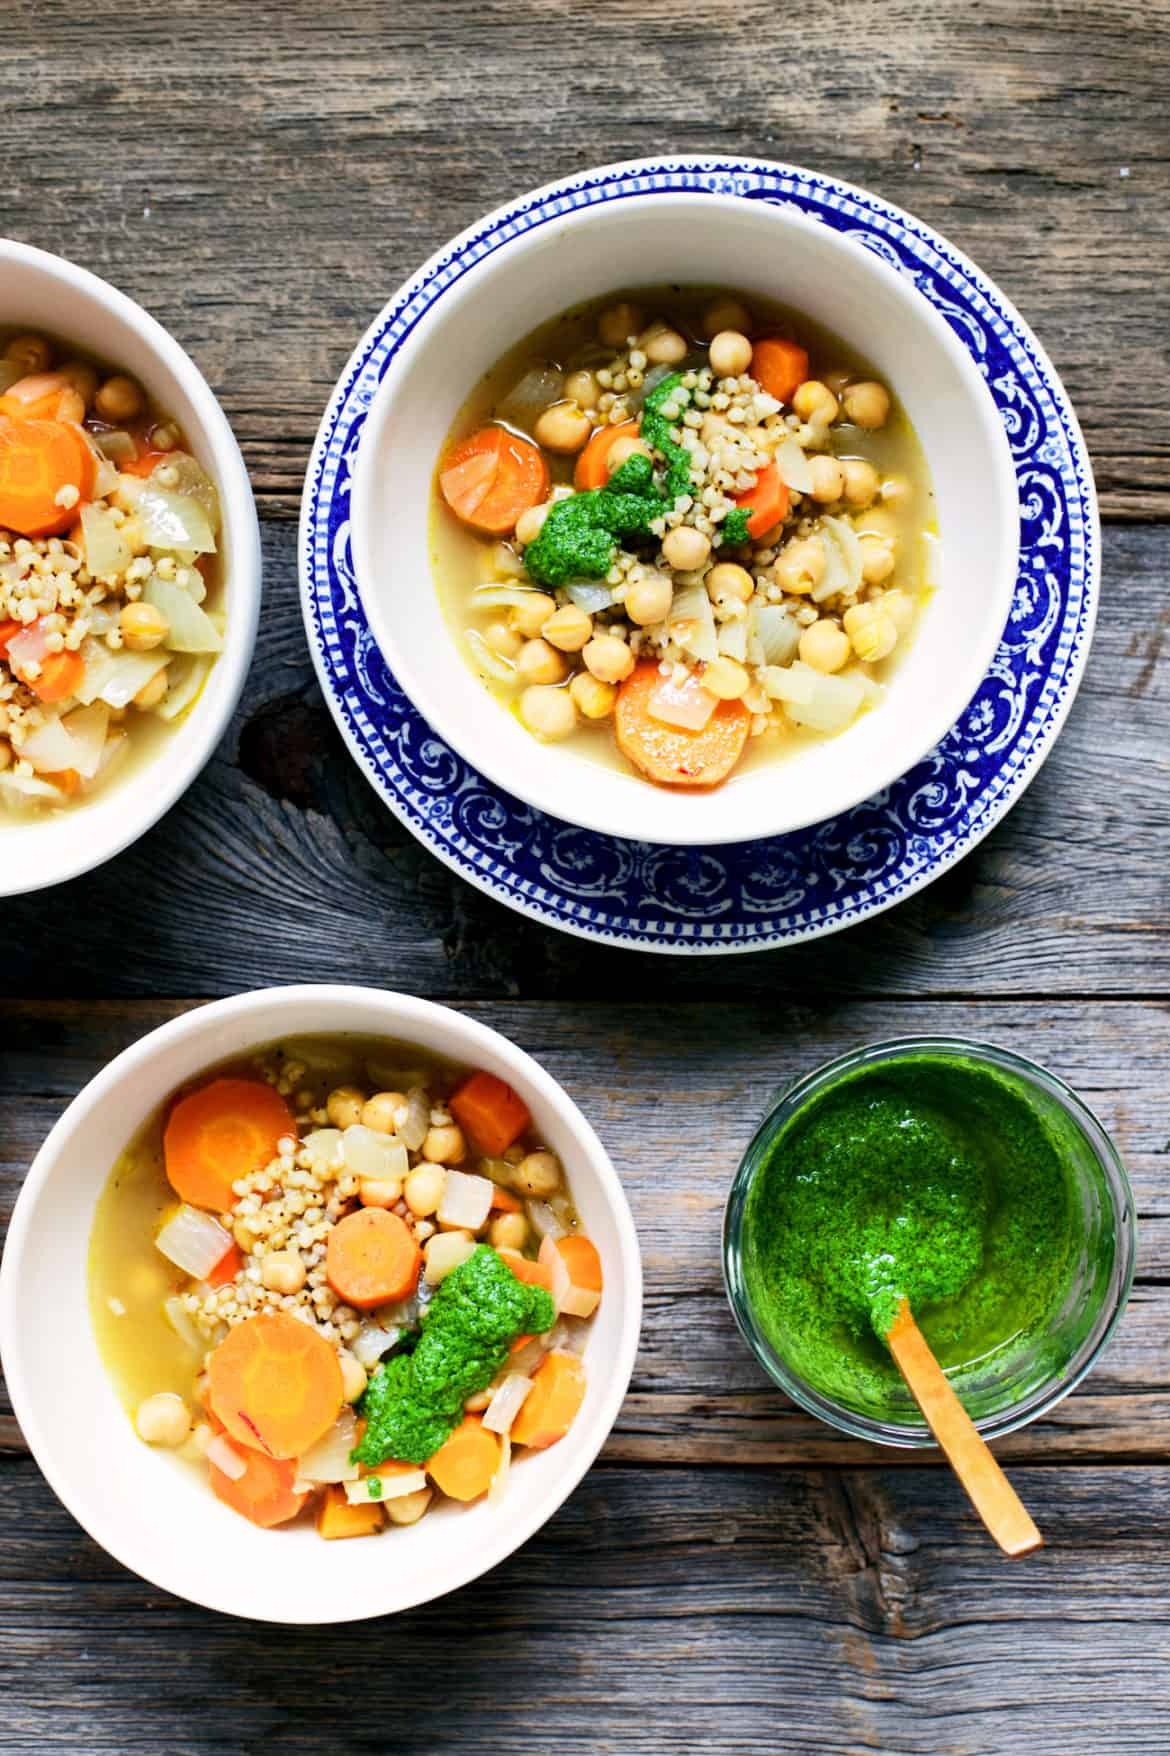 Sorghum, Chickpea & Saffron Soup with Mint Pesto